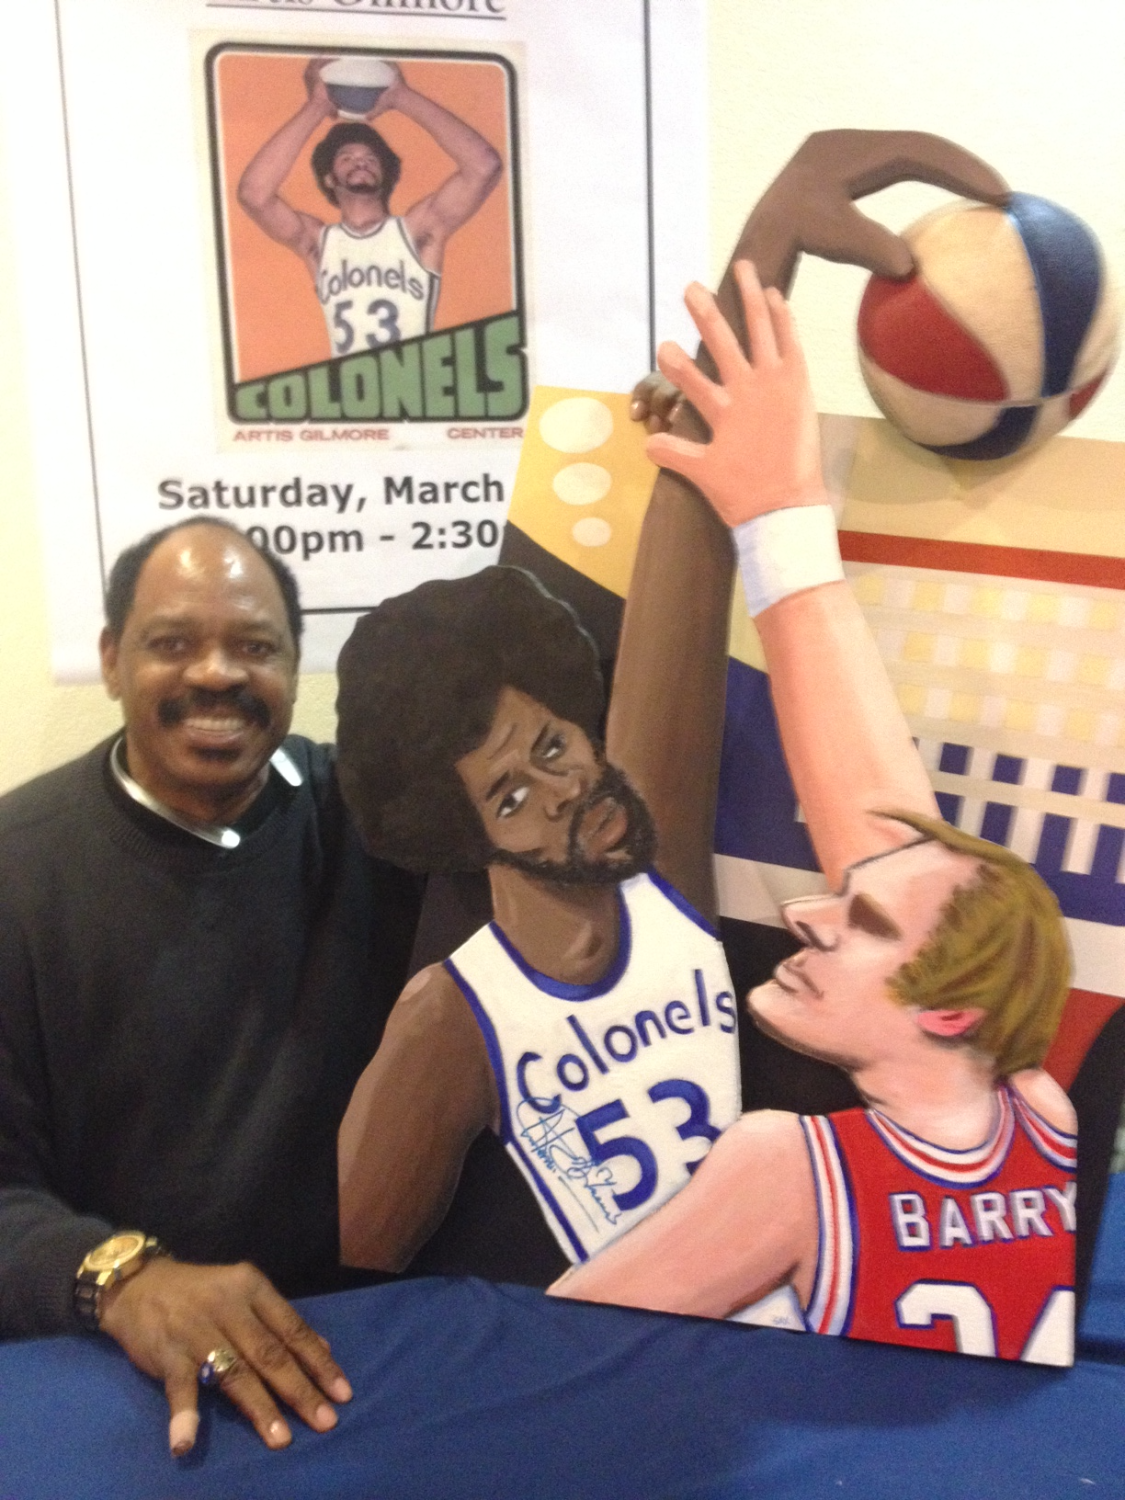 Artis Gilmore with painting